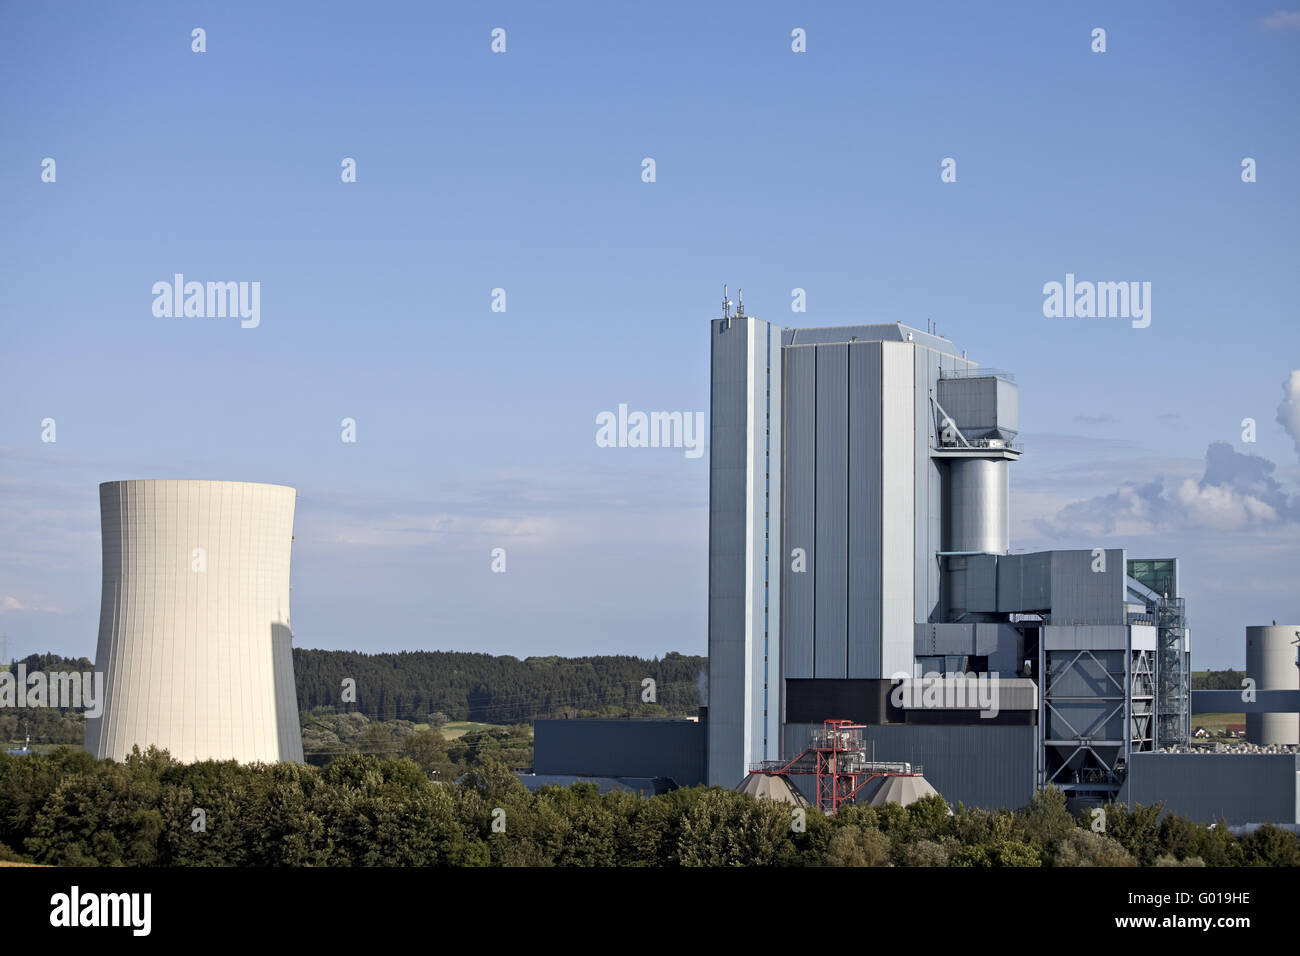 detail of a power plant on a sunny day - Stock Image